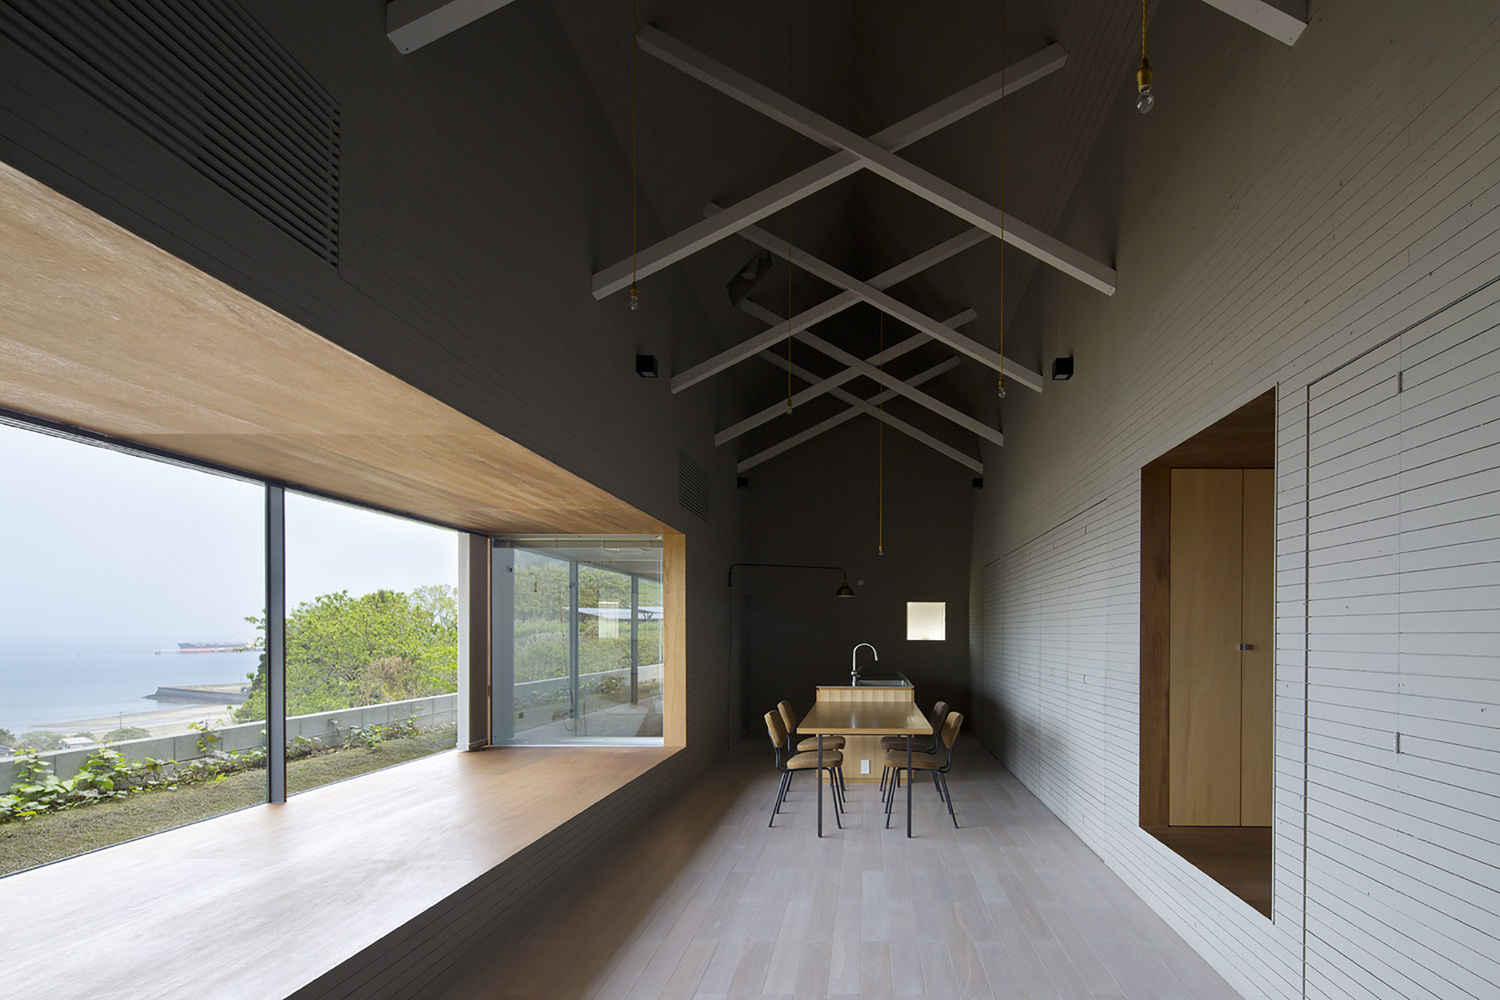 Japanese Office Design Gallery Of Makoto Tanijiri On Architectural Education And